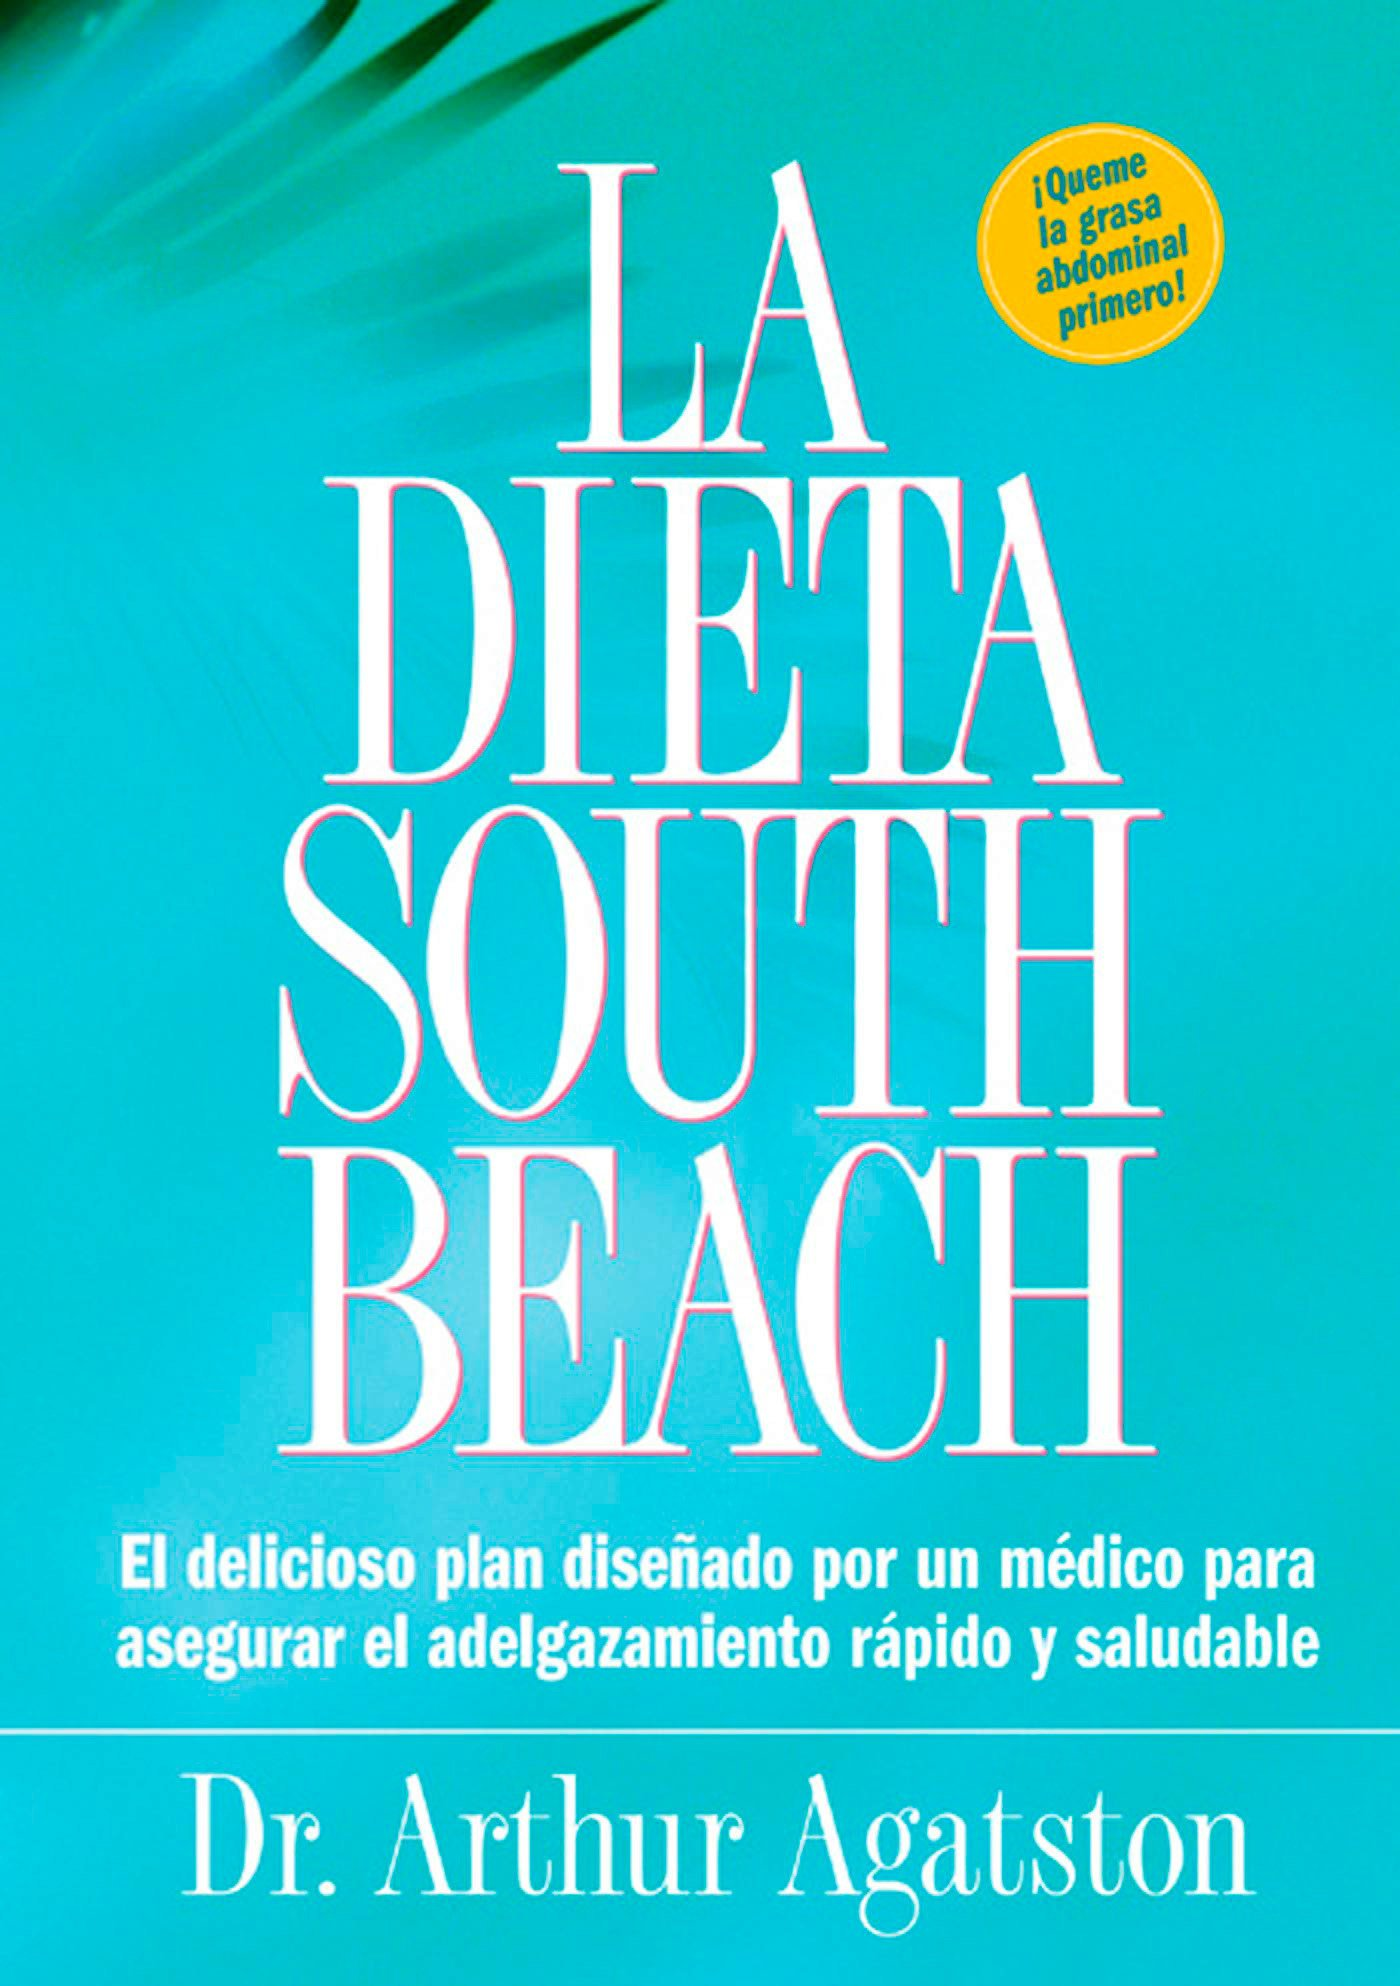 La Dieta South Beach: El delicioso plan disenado por un medico para asegurar el adelgazamiento rapido y saludable (The South Beach Diet) (Spanish Edition) by Rodale Books